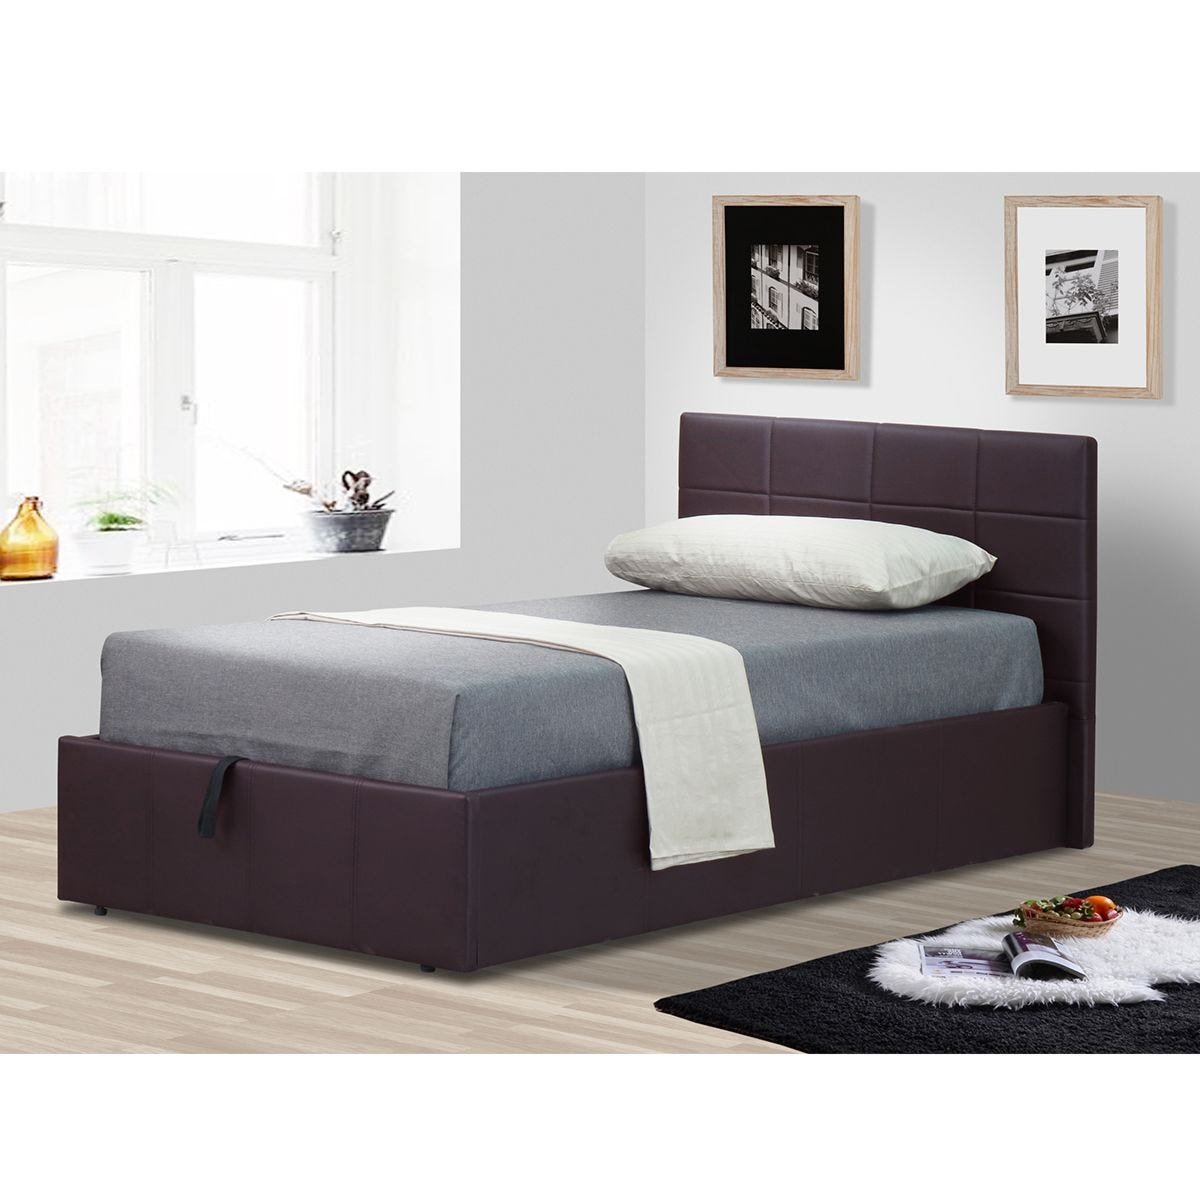 Ezra Ottoman Storage Single Bed - Brown